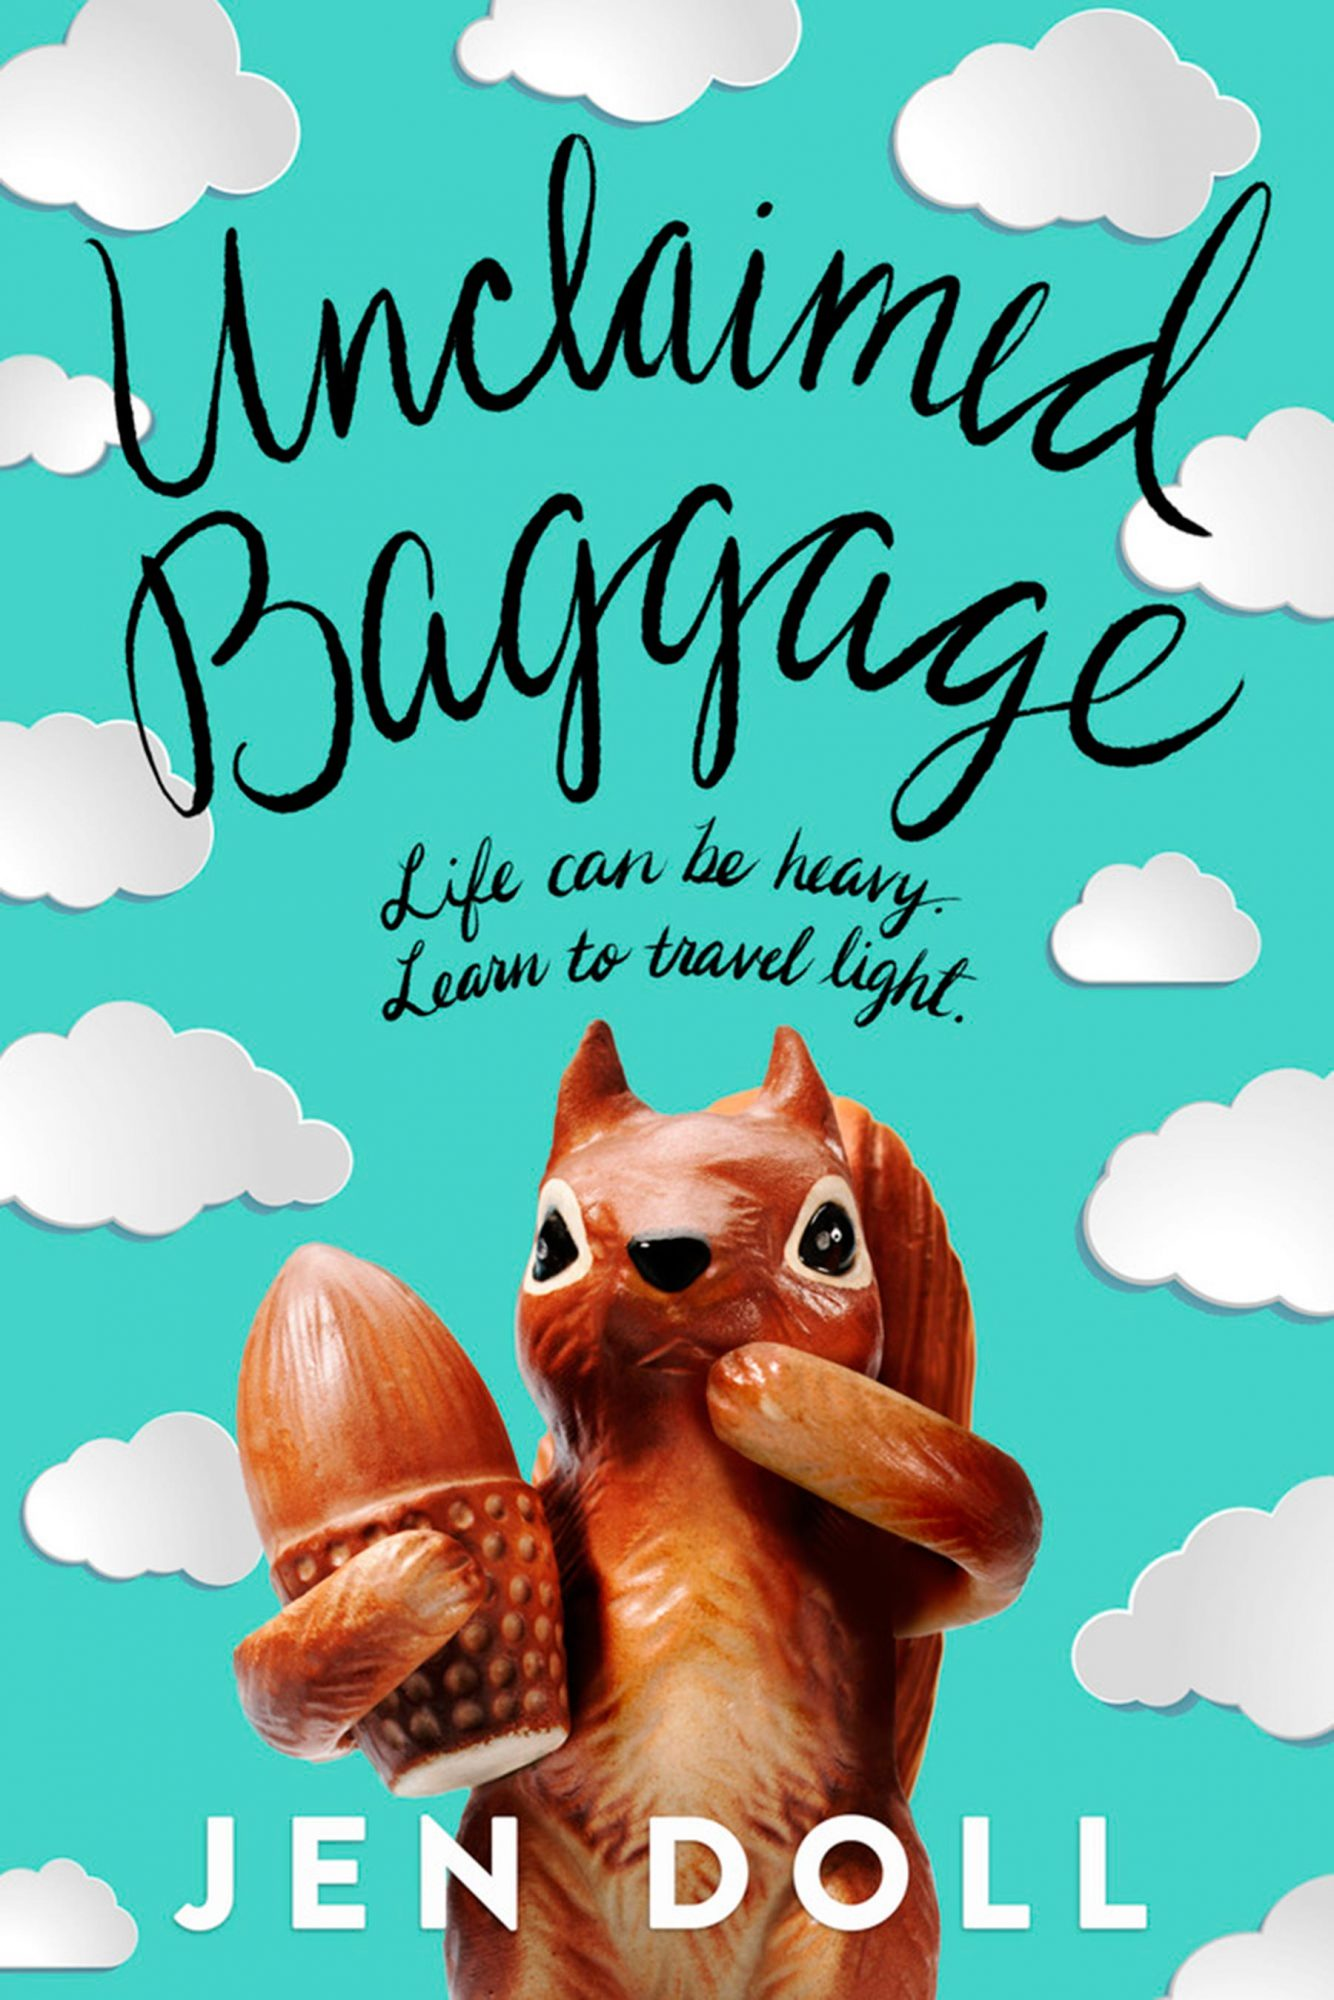 Unclaimed Baggage by Jen Doll CR: Macmillan Children's Publishing Group